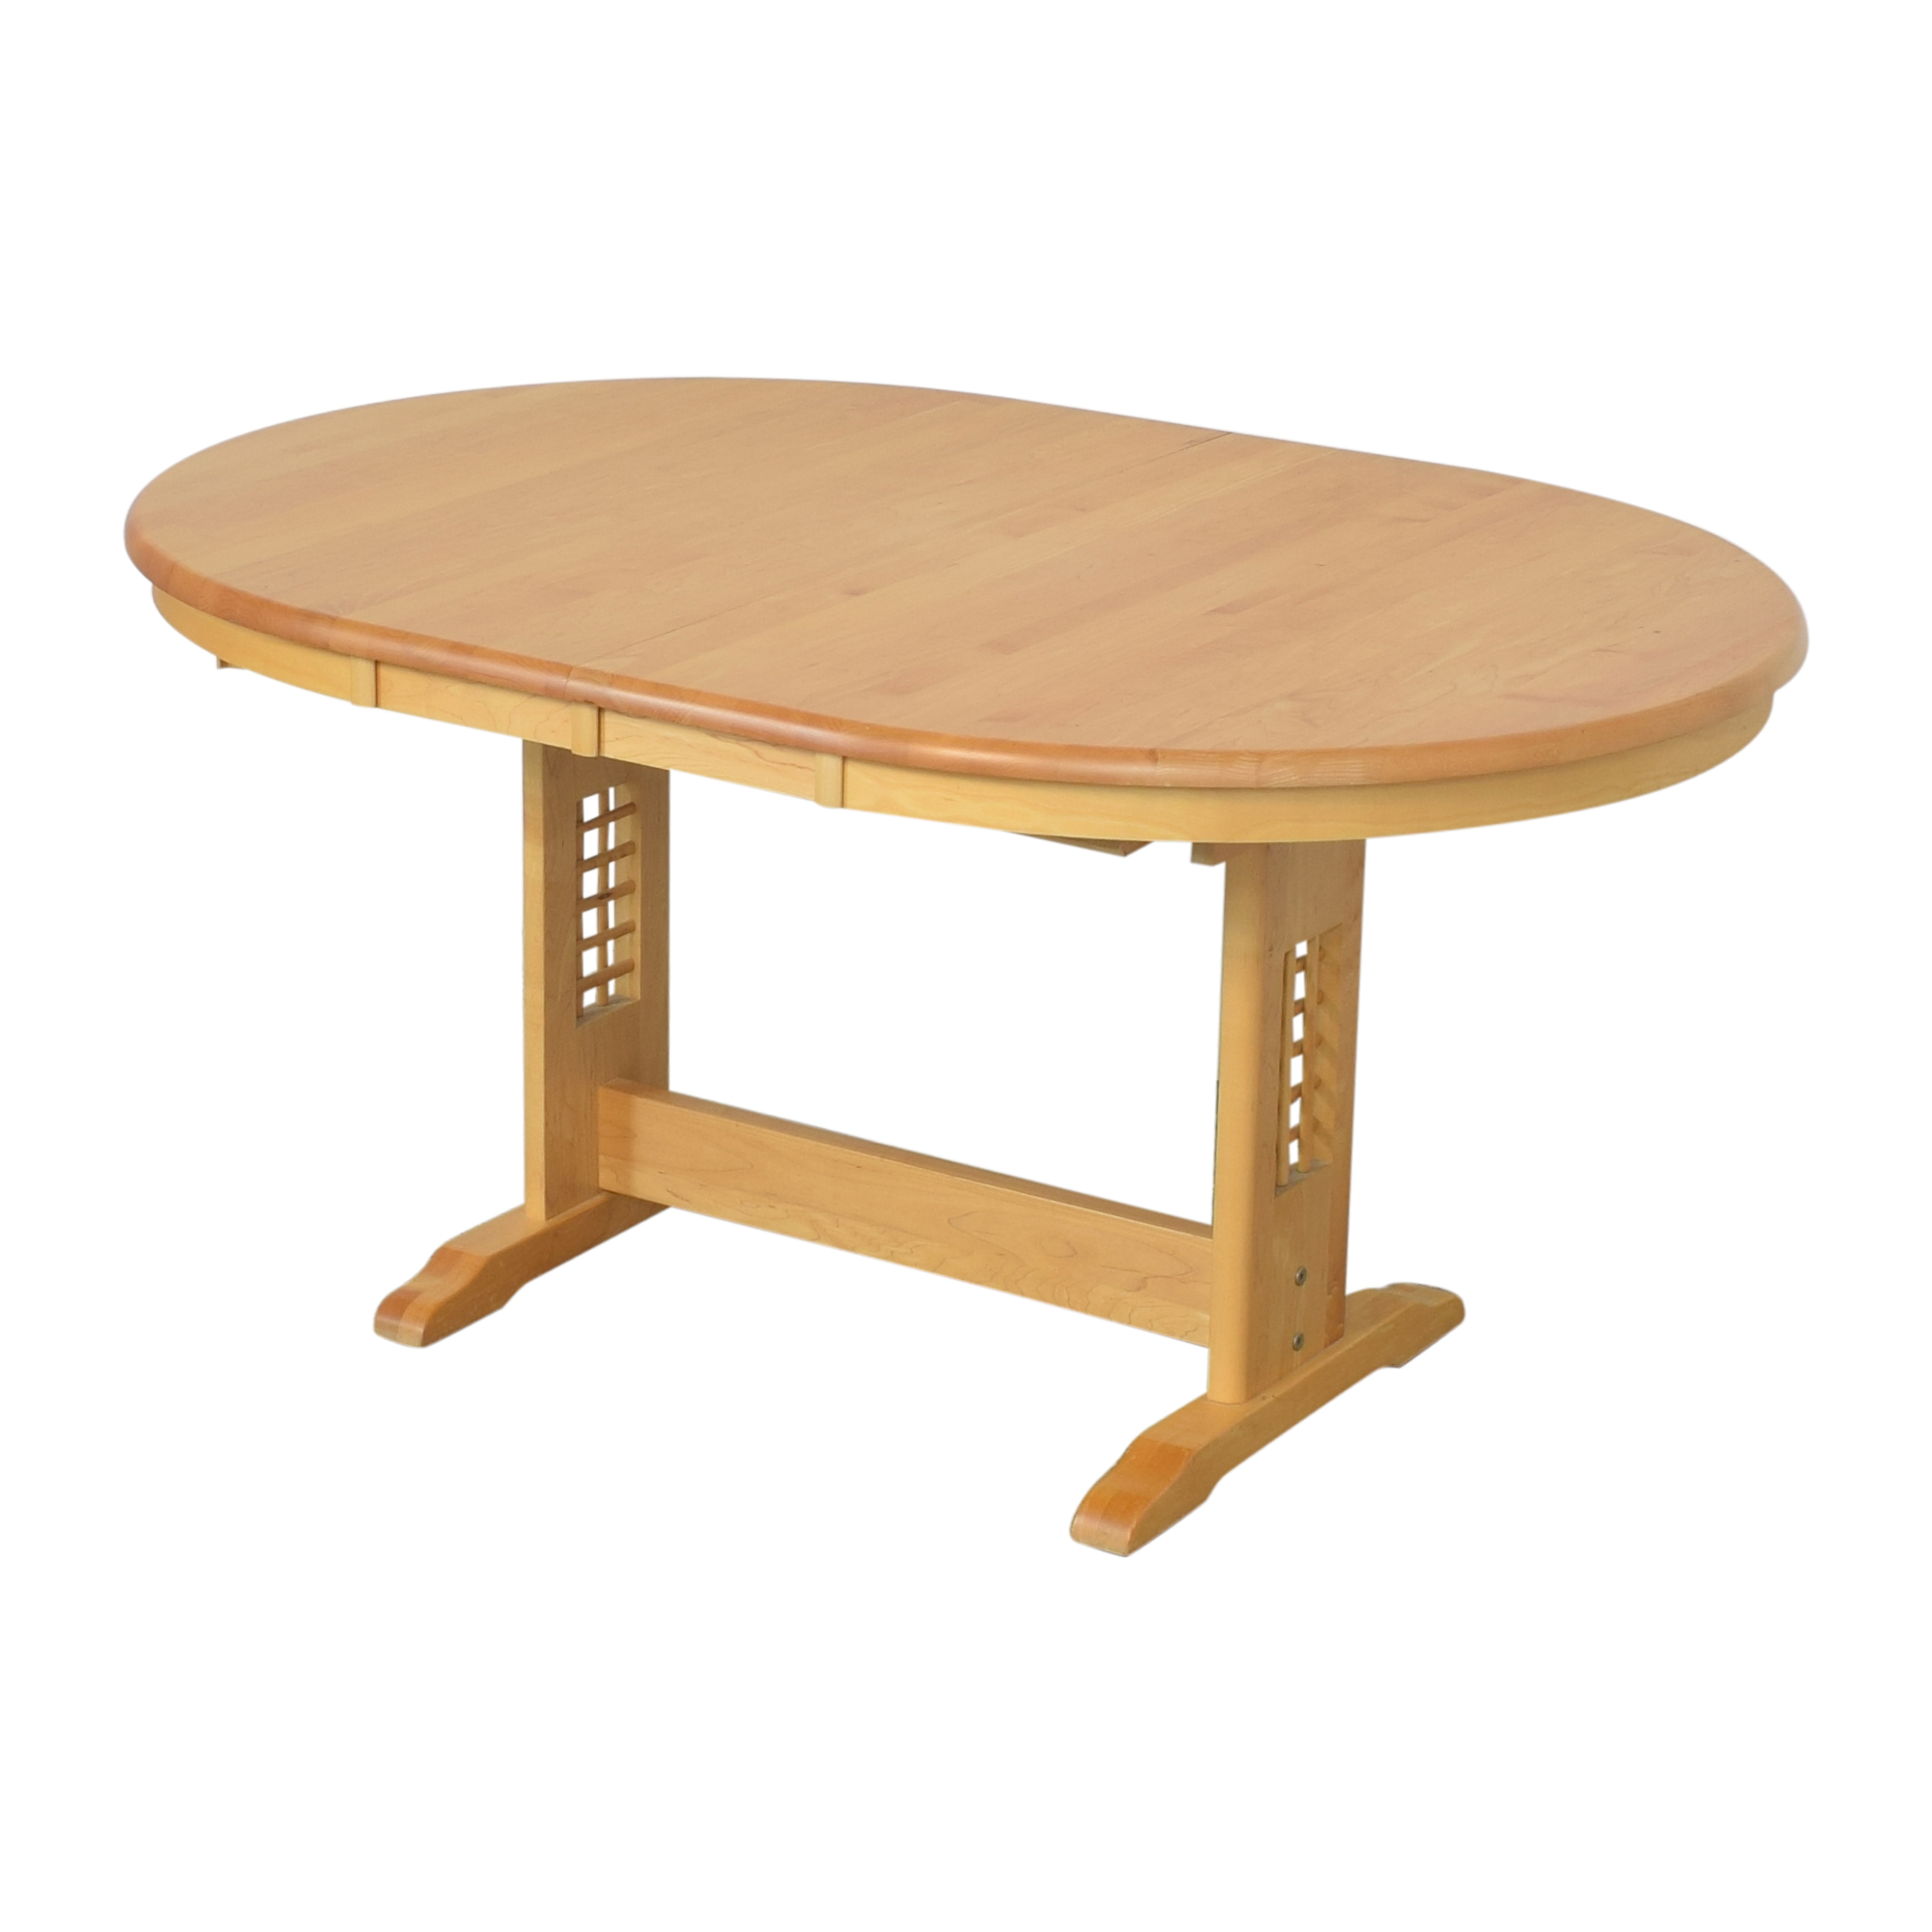 Oval Extending Dining Table sale